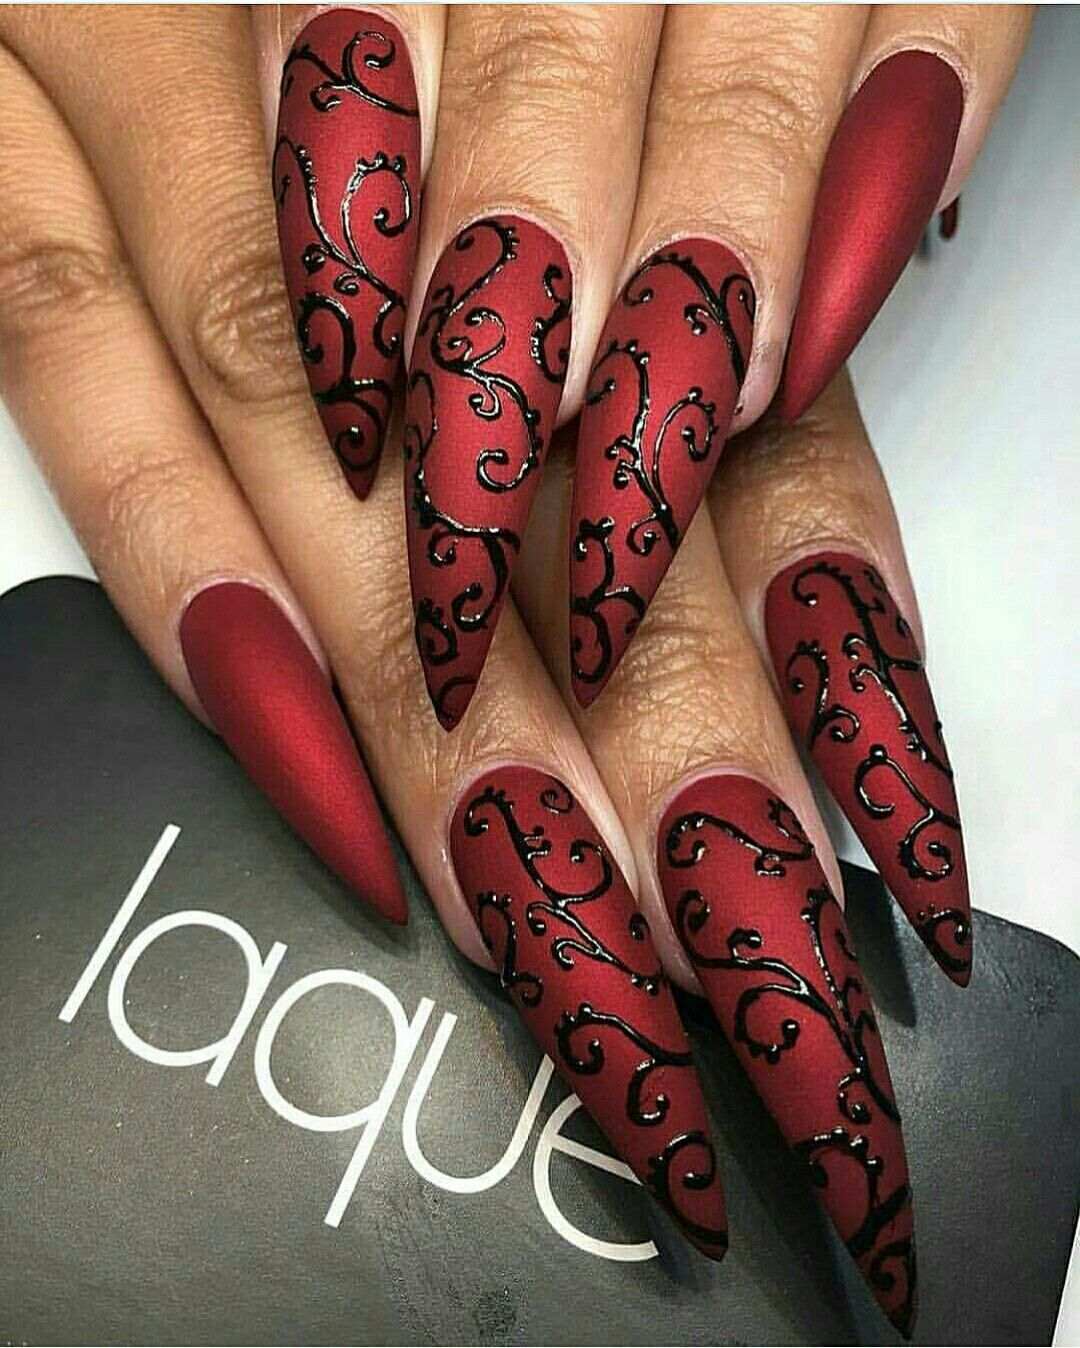 pretty colors but not a fan of the shape of the nails | Nägel ...